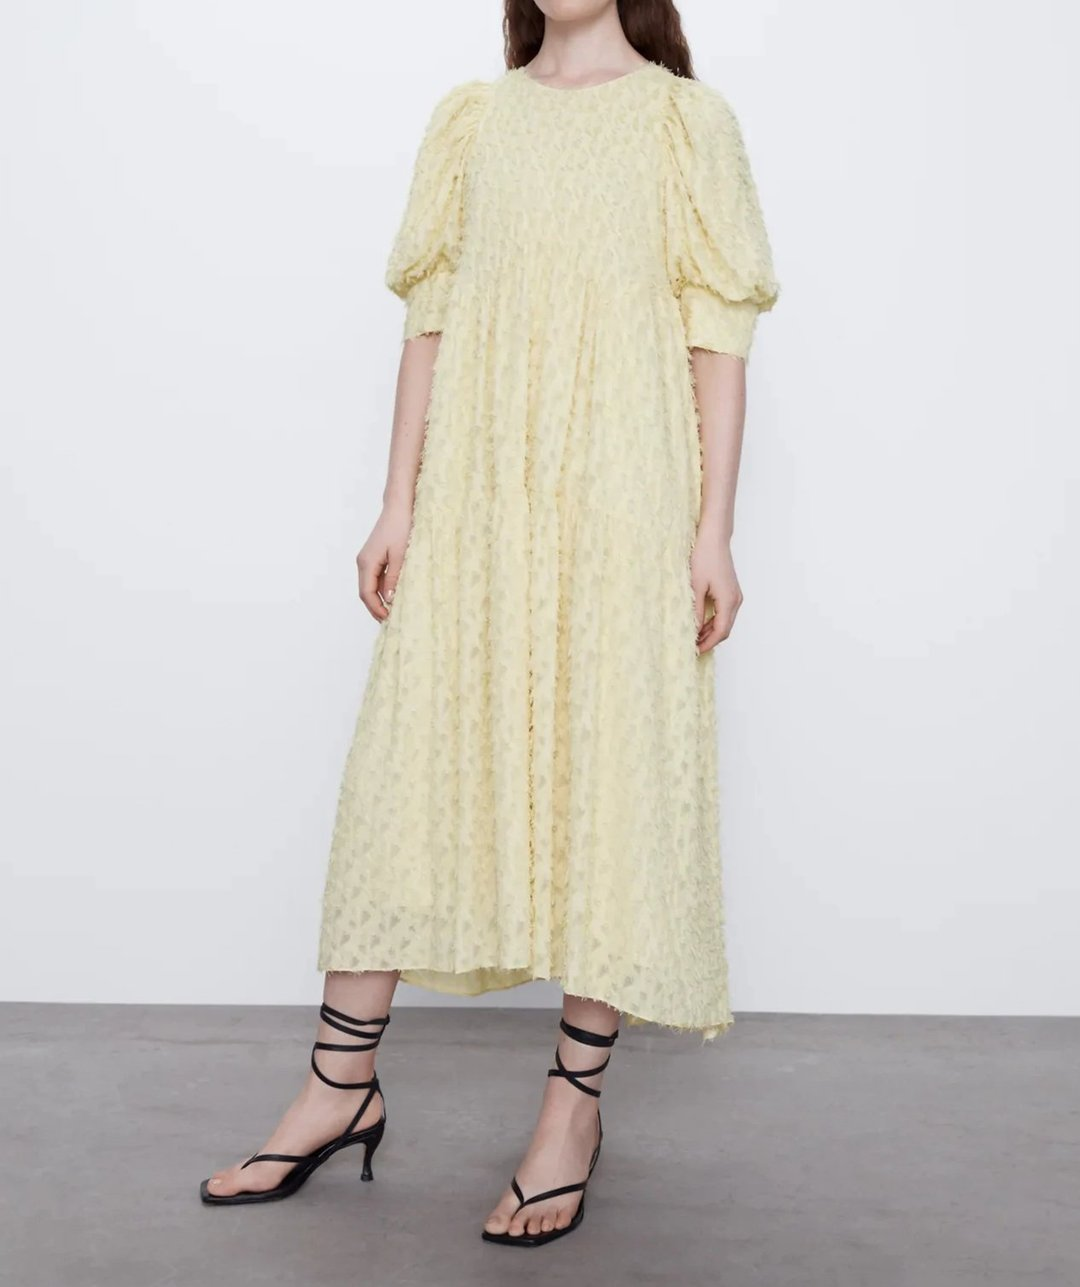 Loose-Fitting Textured Dress - toplula